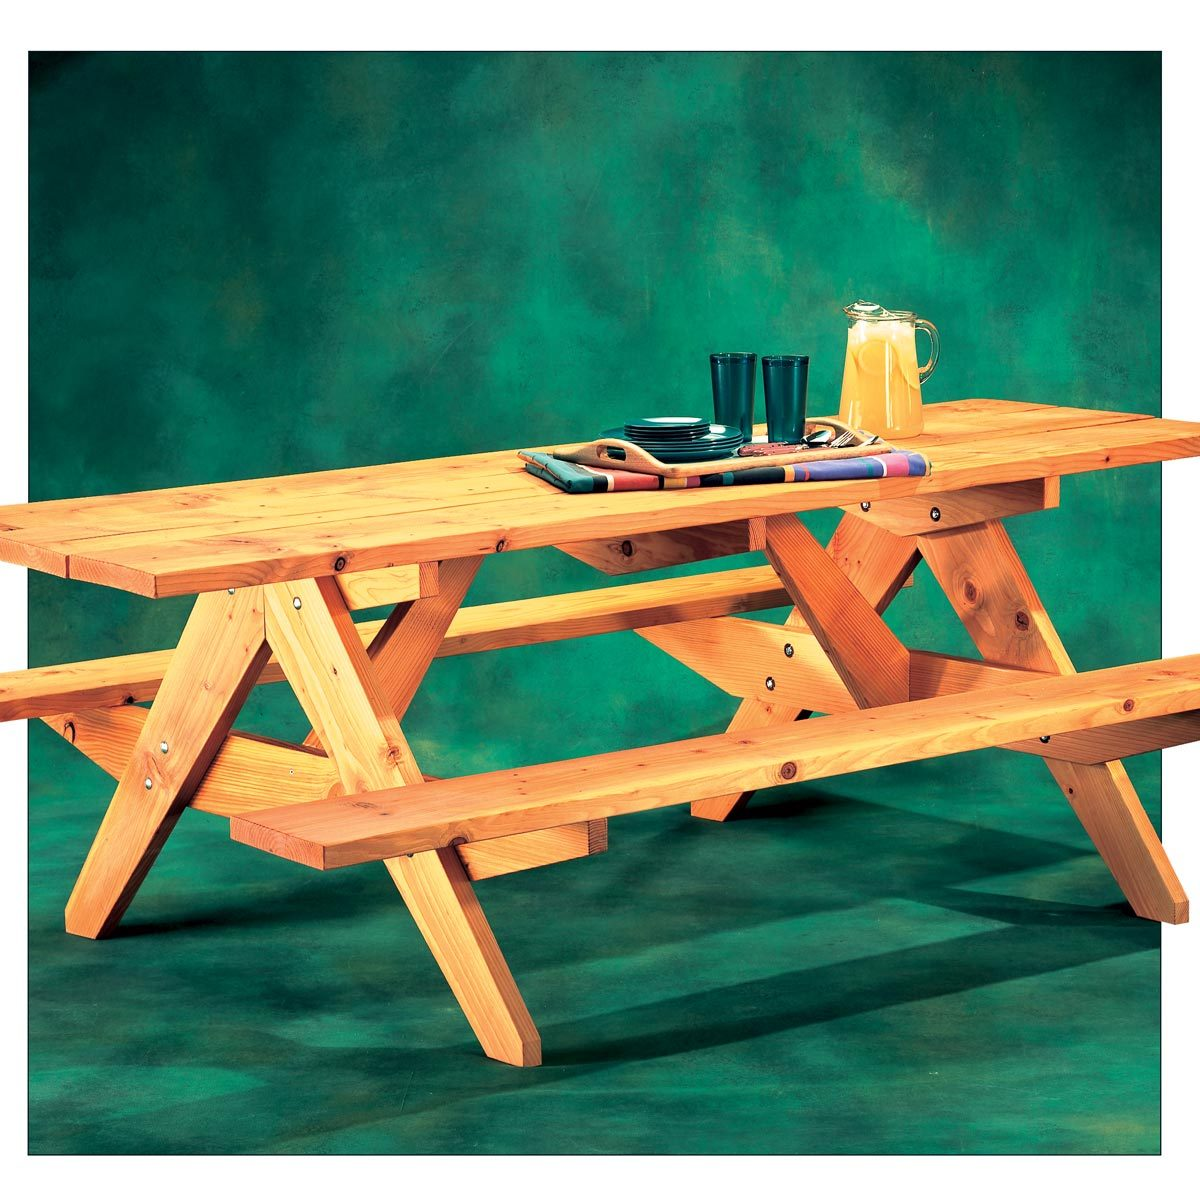 How To Build An AFrame Picnic Table The Family Handyman - Ready to assemble picnic table